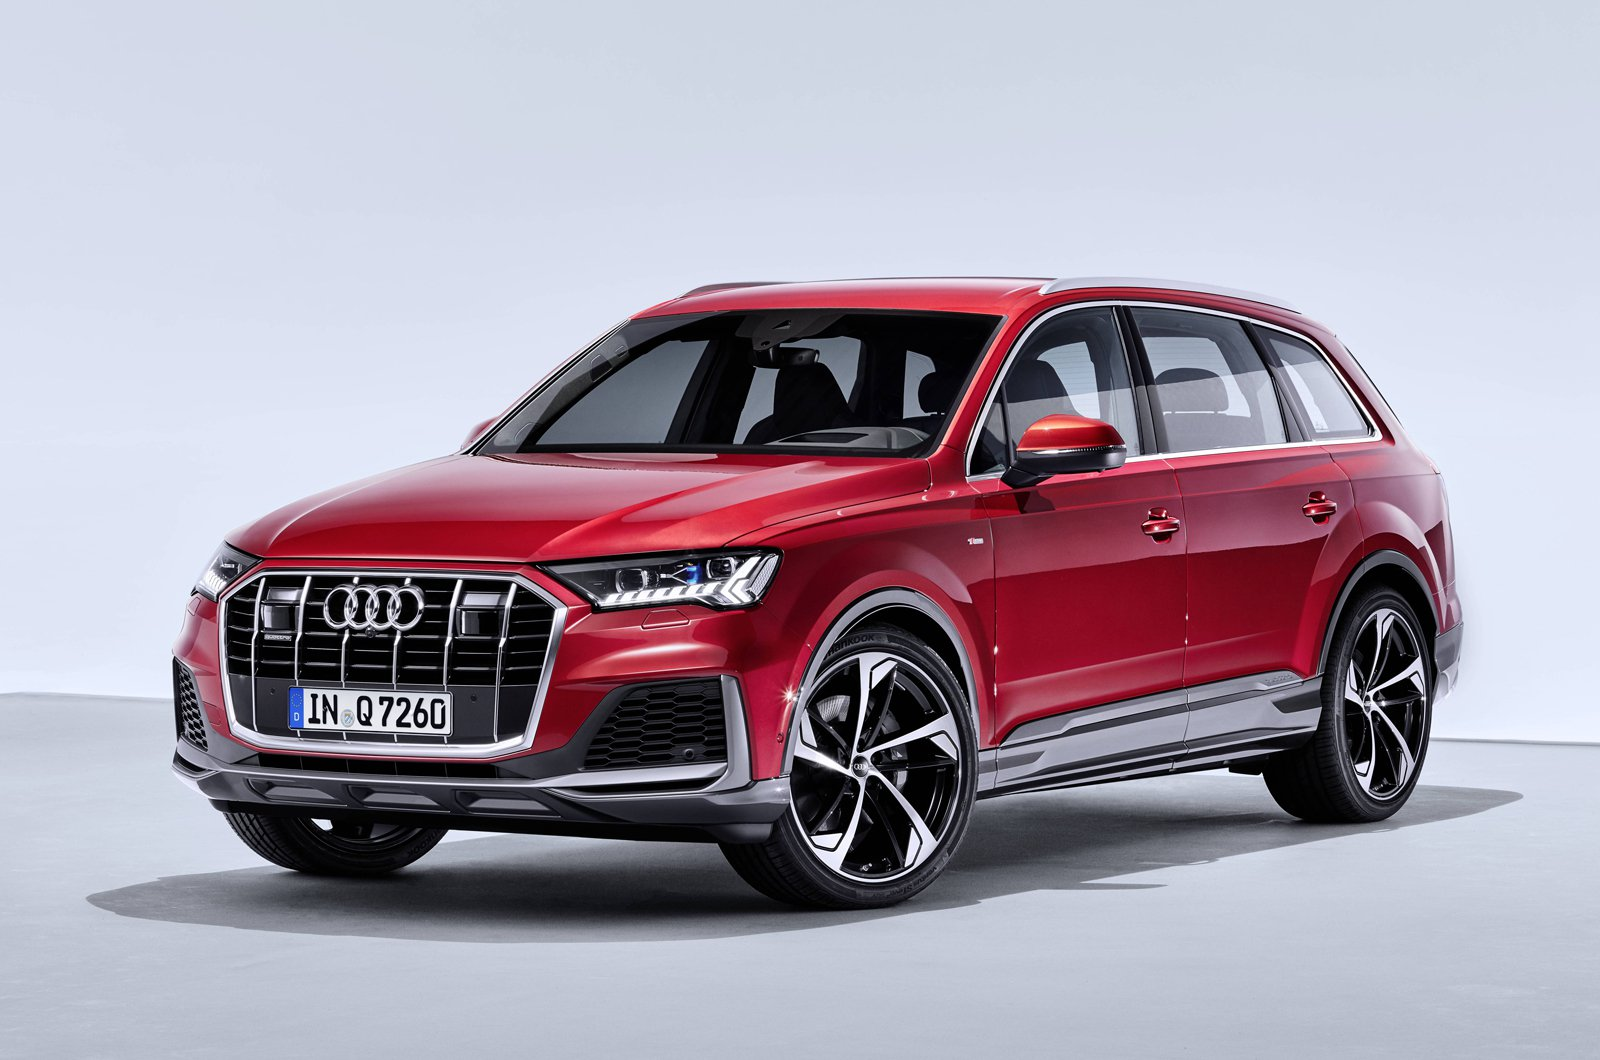 2018 Audi SQ7 TDI: Specs, Design, Price >> 2020 Audi Q7 Revealed Price Spec And Release Date What Car